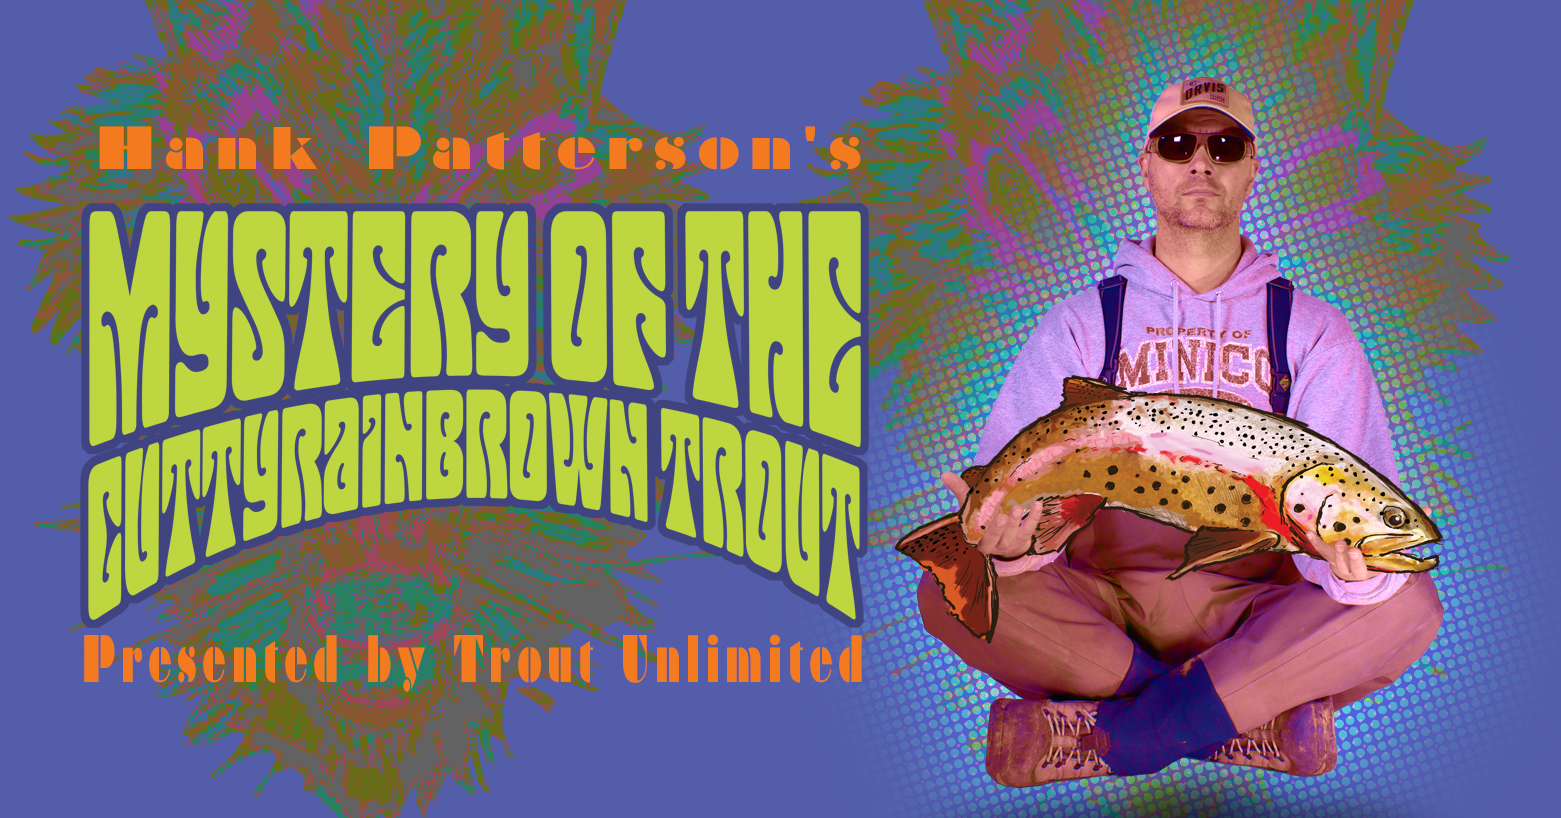 Hank patterson 39 s mystery of the cuttyrainbrown trout for Hank patterson fly fishing